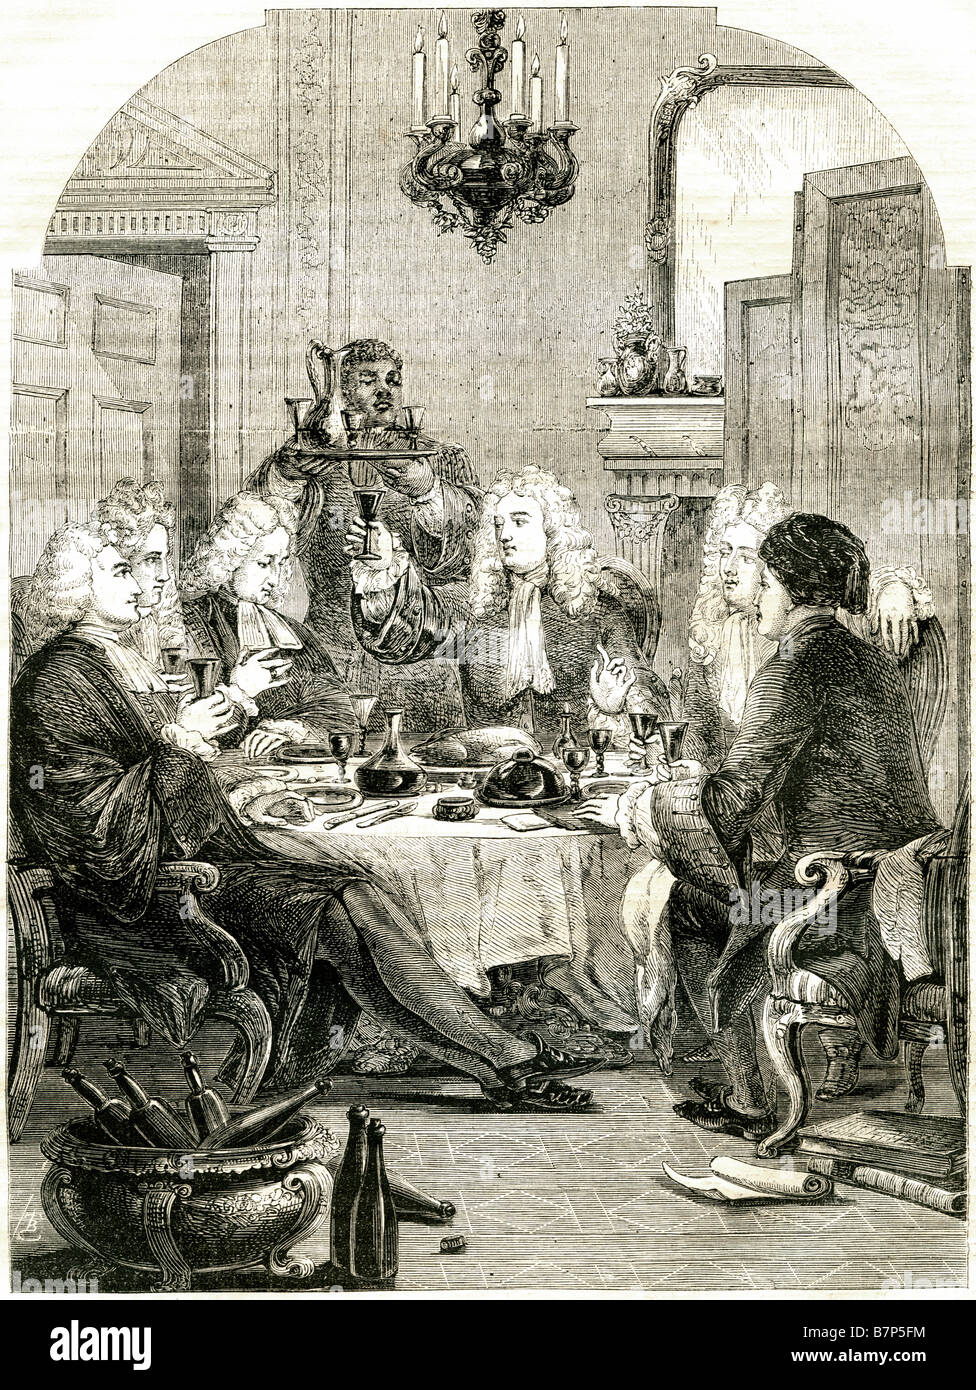 servant wigs feast table gentlemen wine scroll toasting interior room candle dinner lunc dining traditional clothing Stock Photo